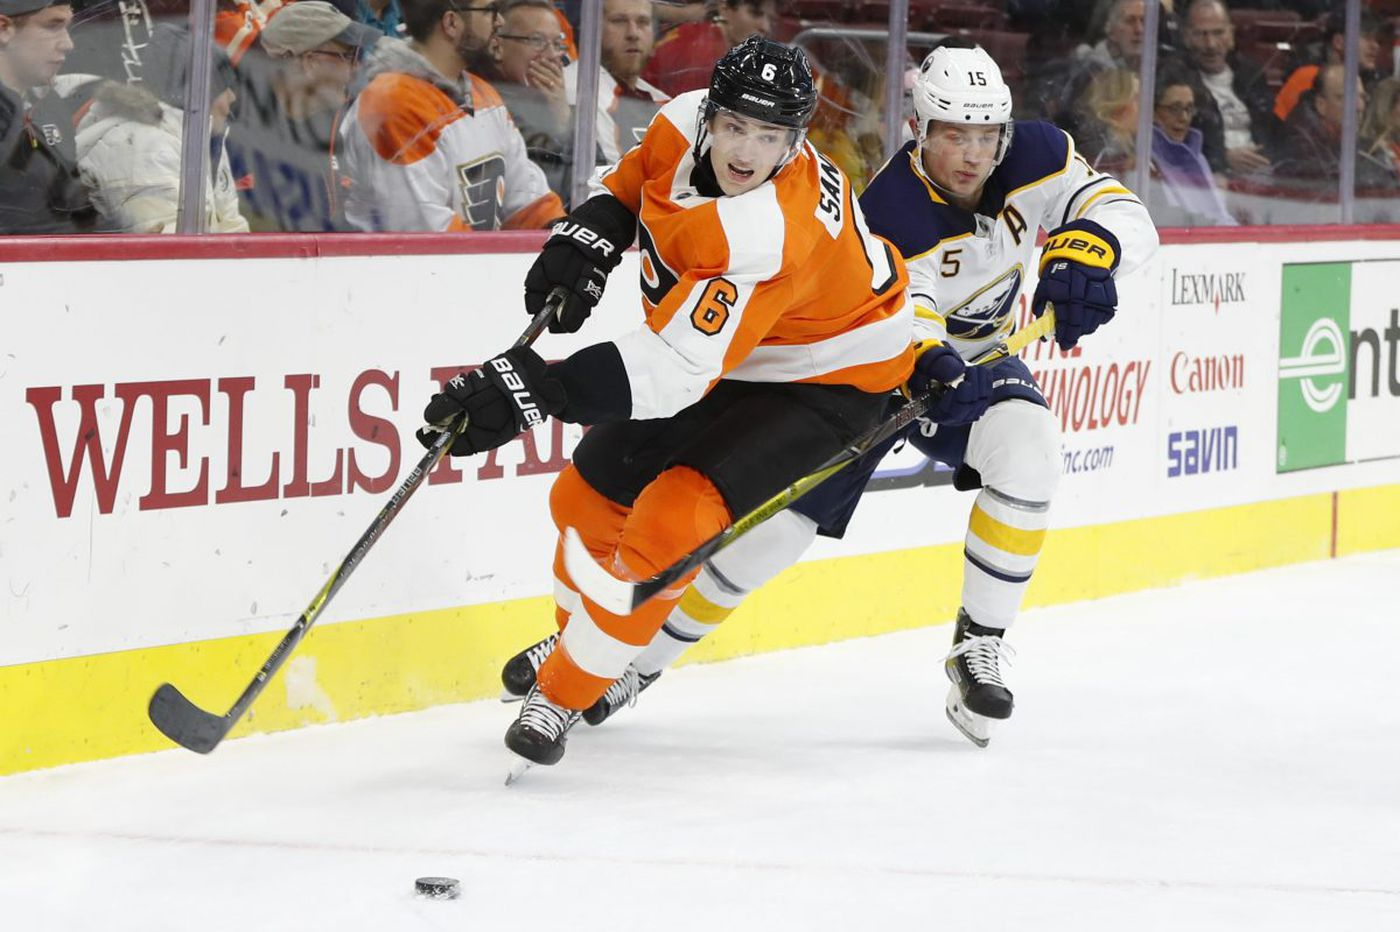 Flyers-Sabres preview: While Nolan Patrick's team shines, Jack Eichel's team struggles